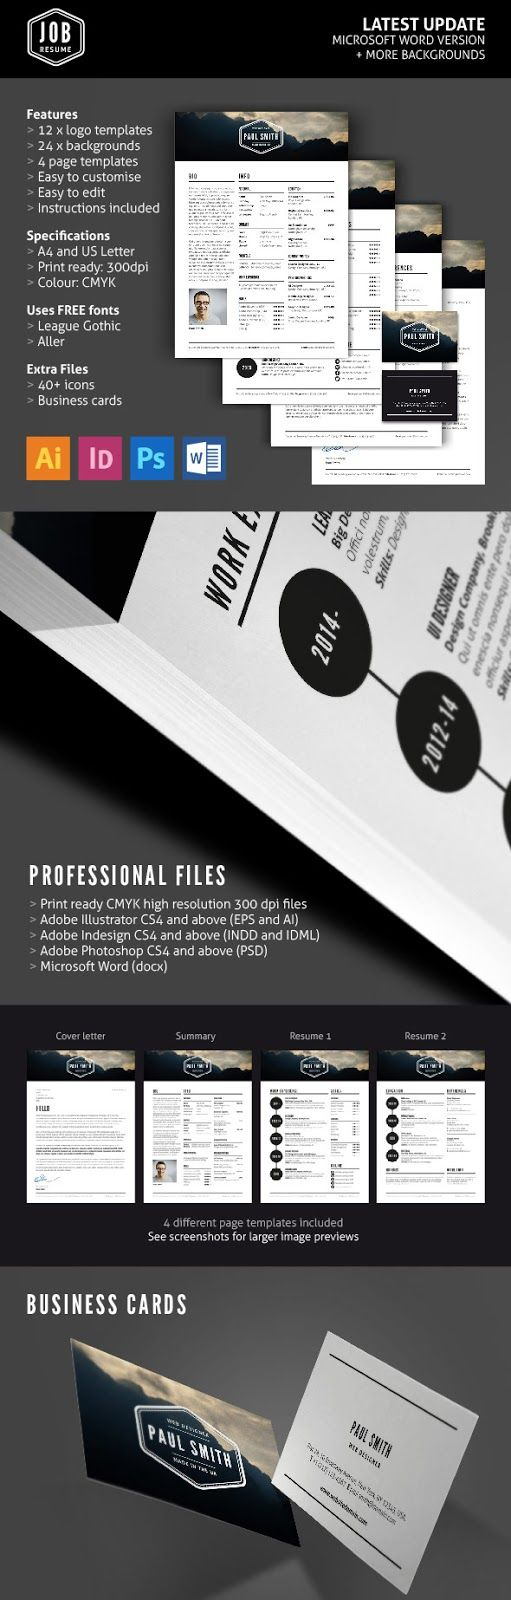 best images about curriculum vitae infographic and will it represent you creatively allowing you to stand out distinctively in a crowded pool of applicants if you ve recently